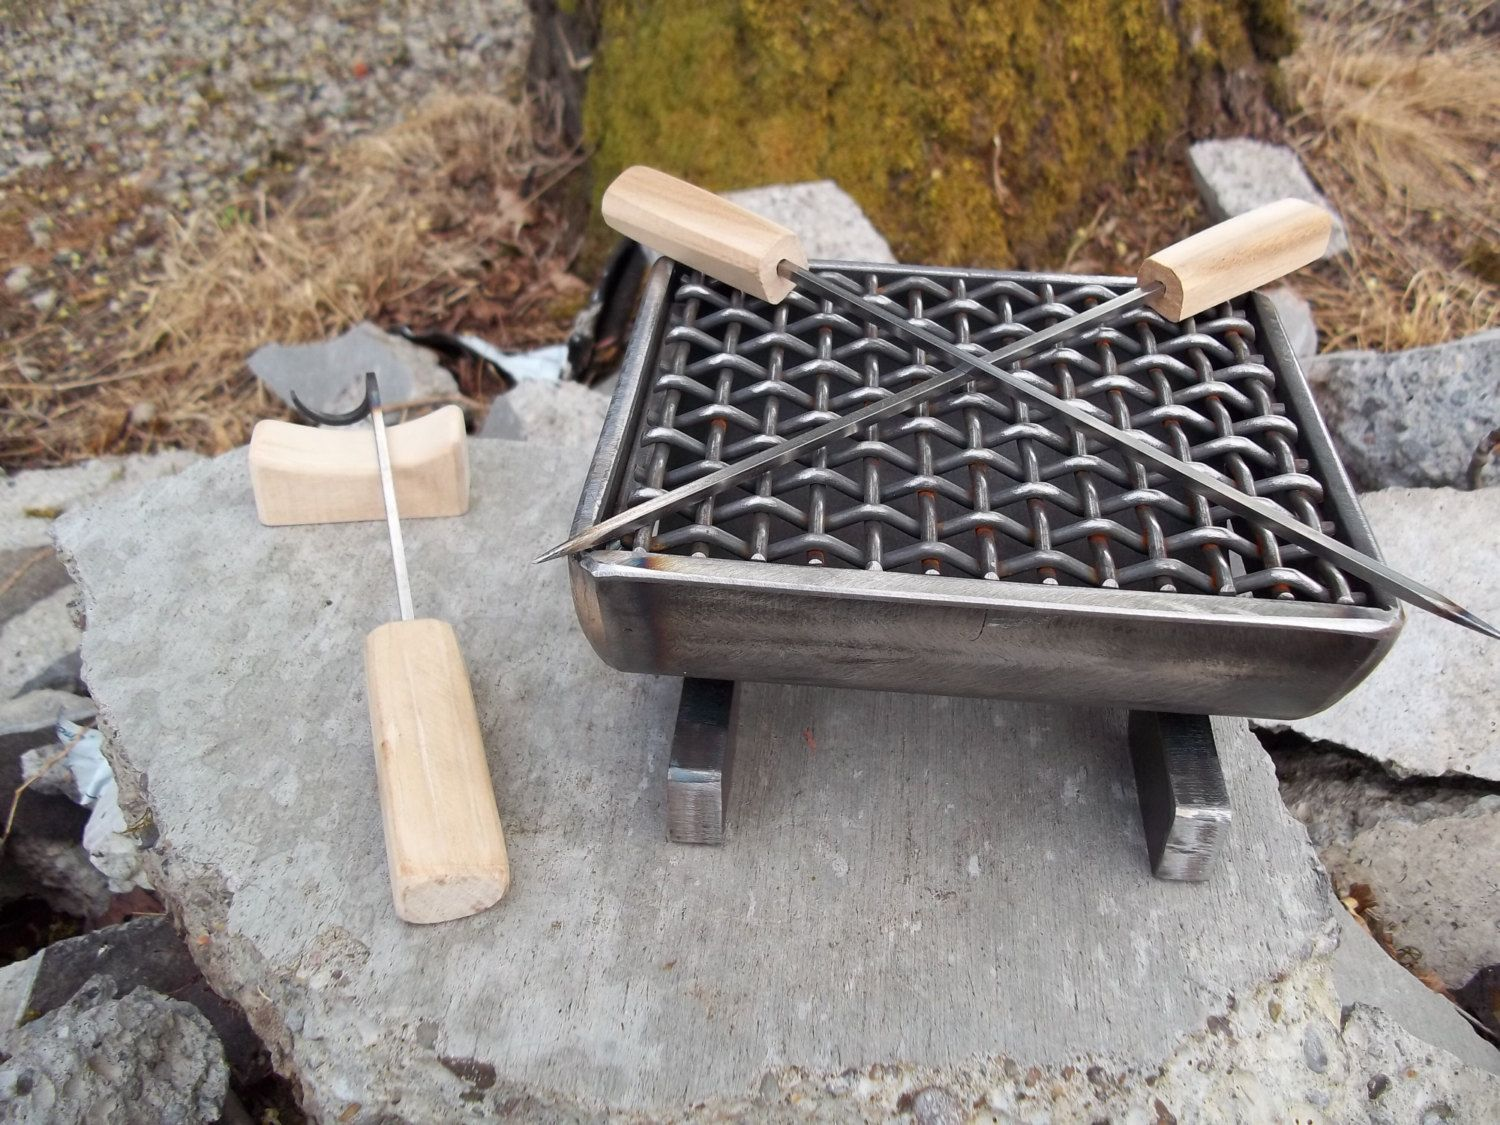 welded metal hibachi grill for two with wood handle skewers meat